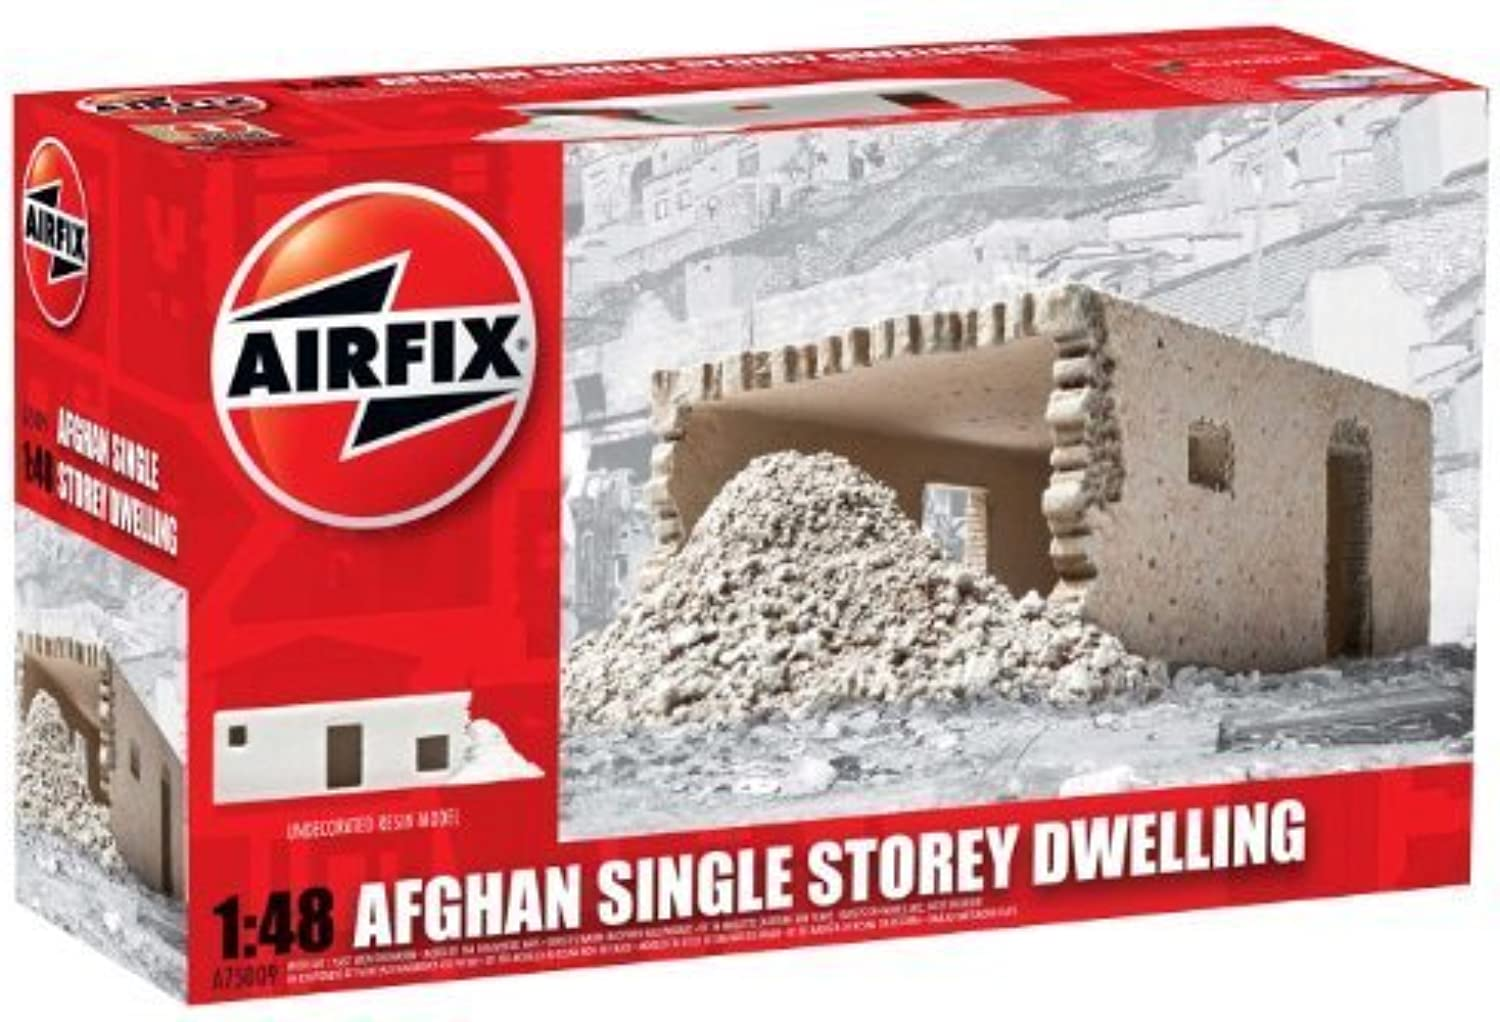 Airfix A75009 Afghan Single Storey Dwelling Model Building Kit, 1 48 Scale by Hornby